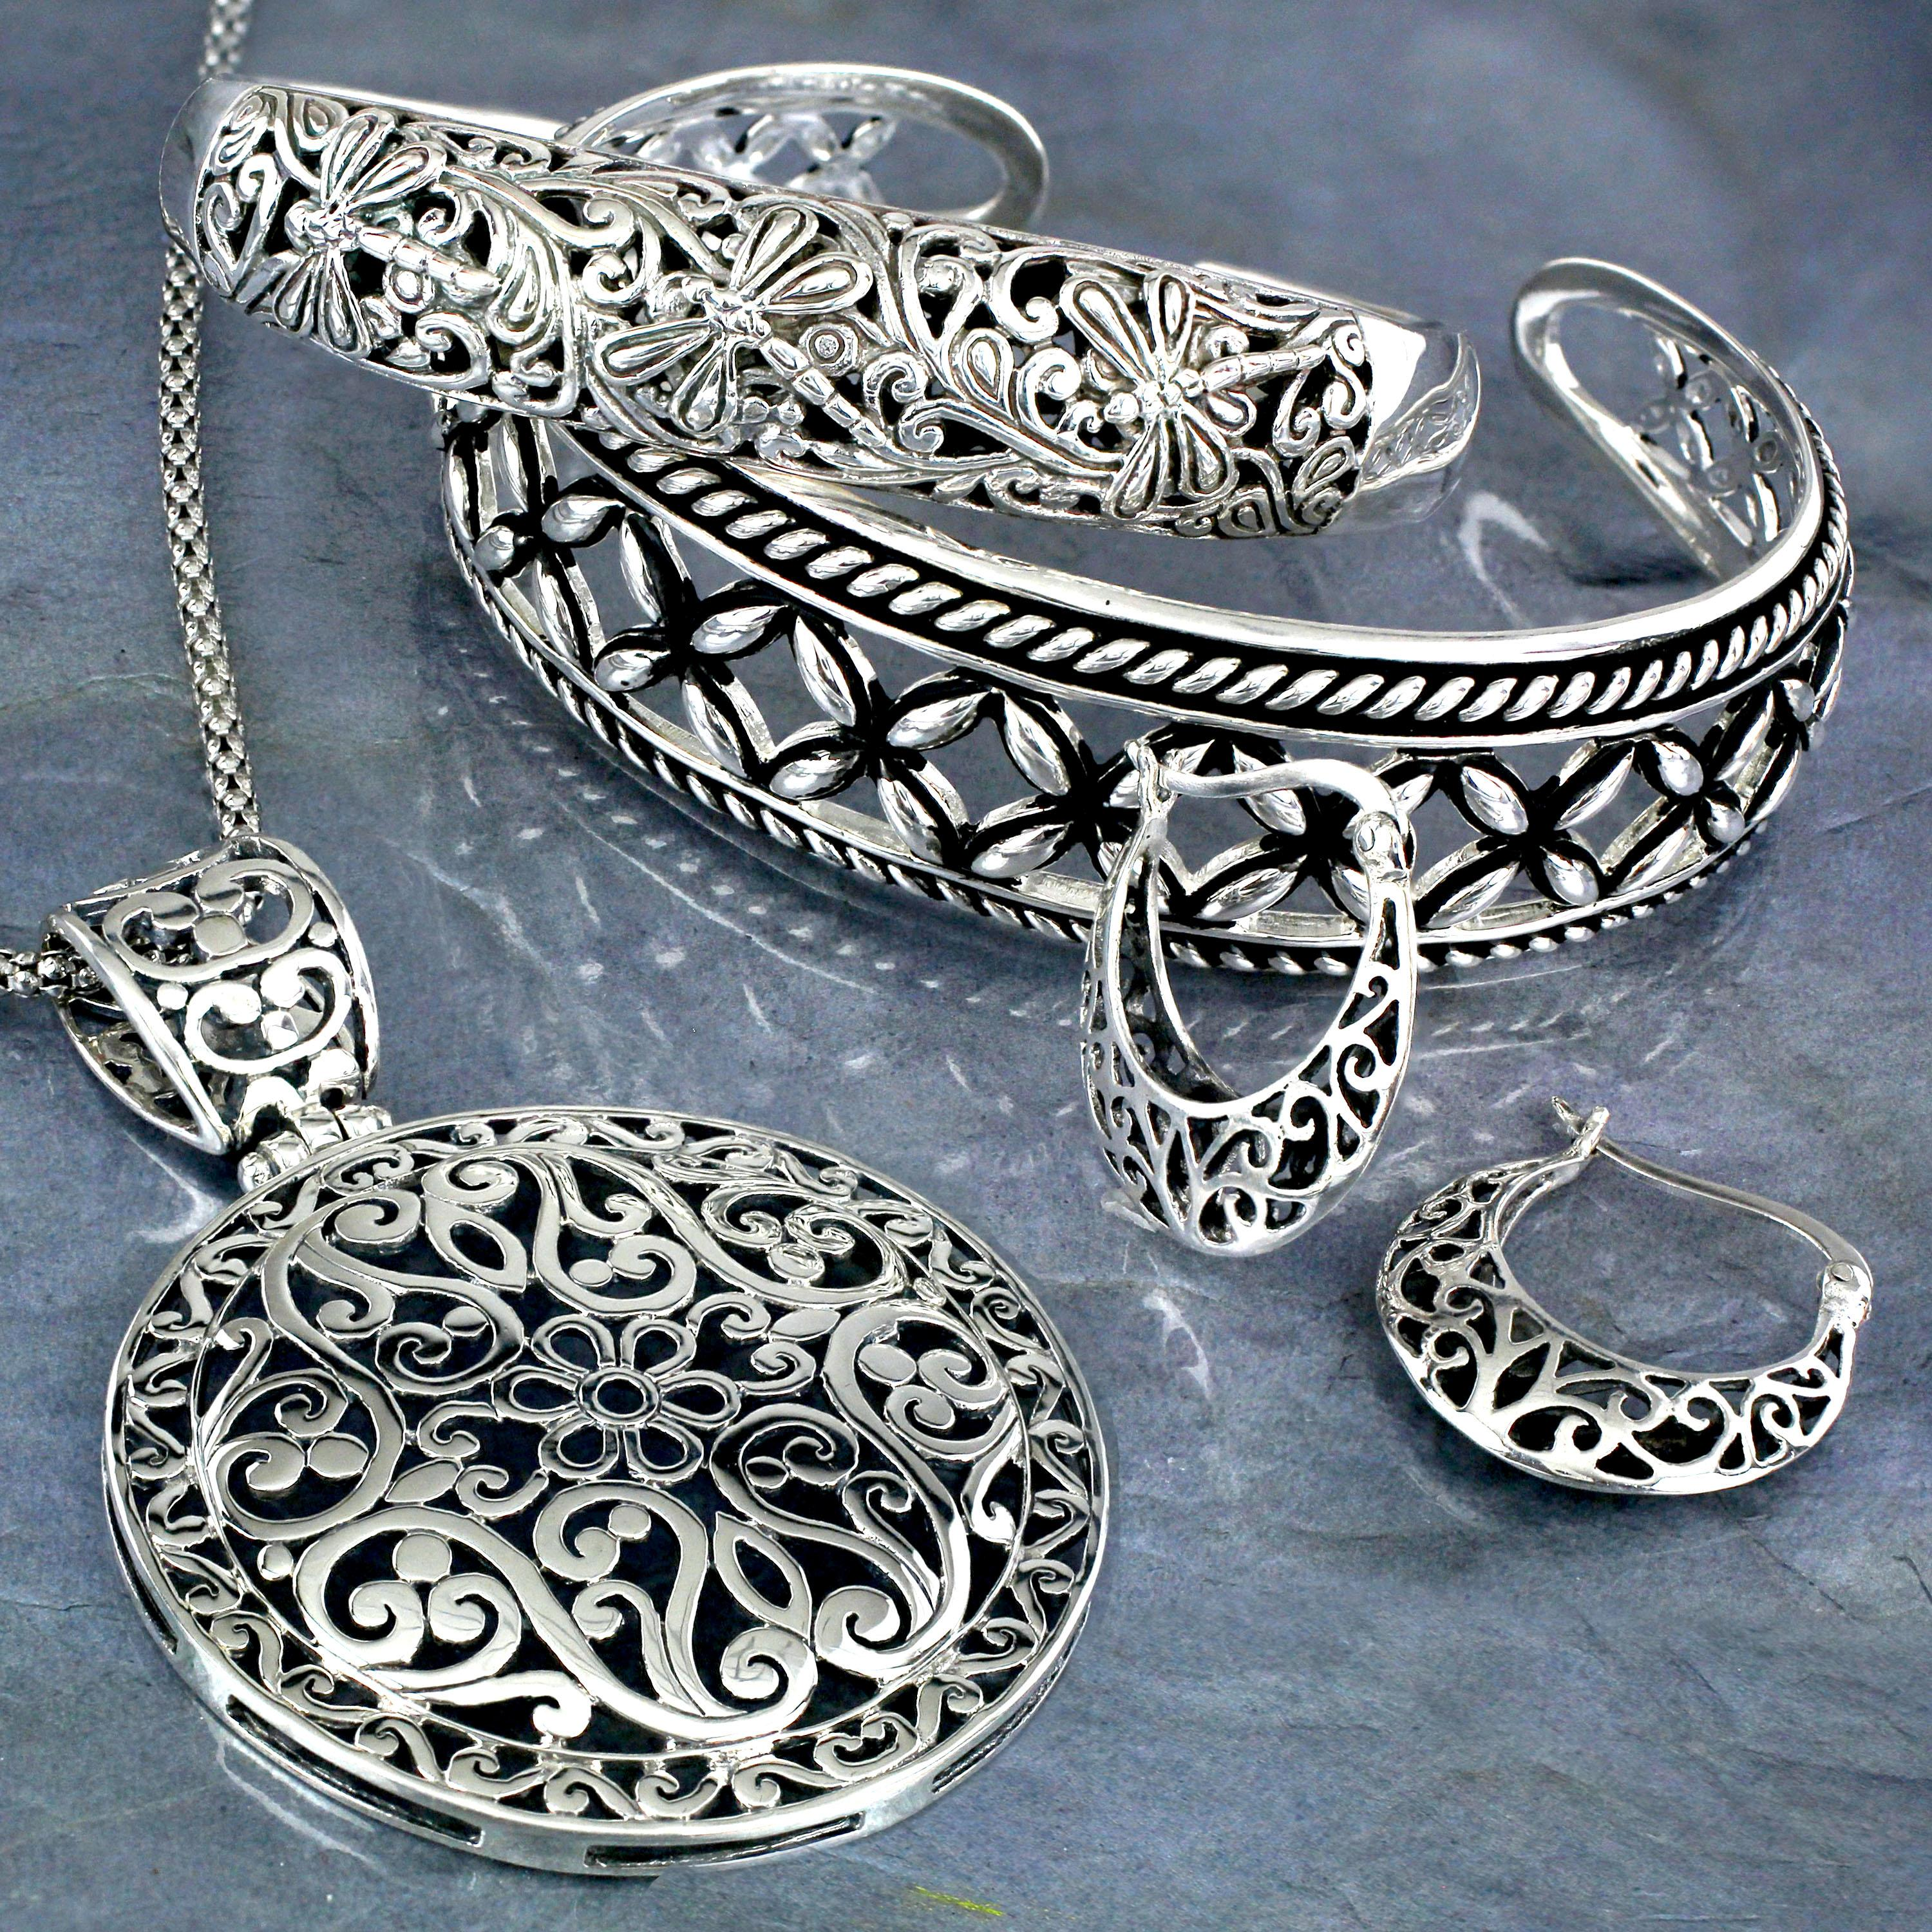 Image result for sterling silver jewelry